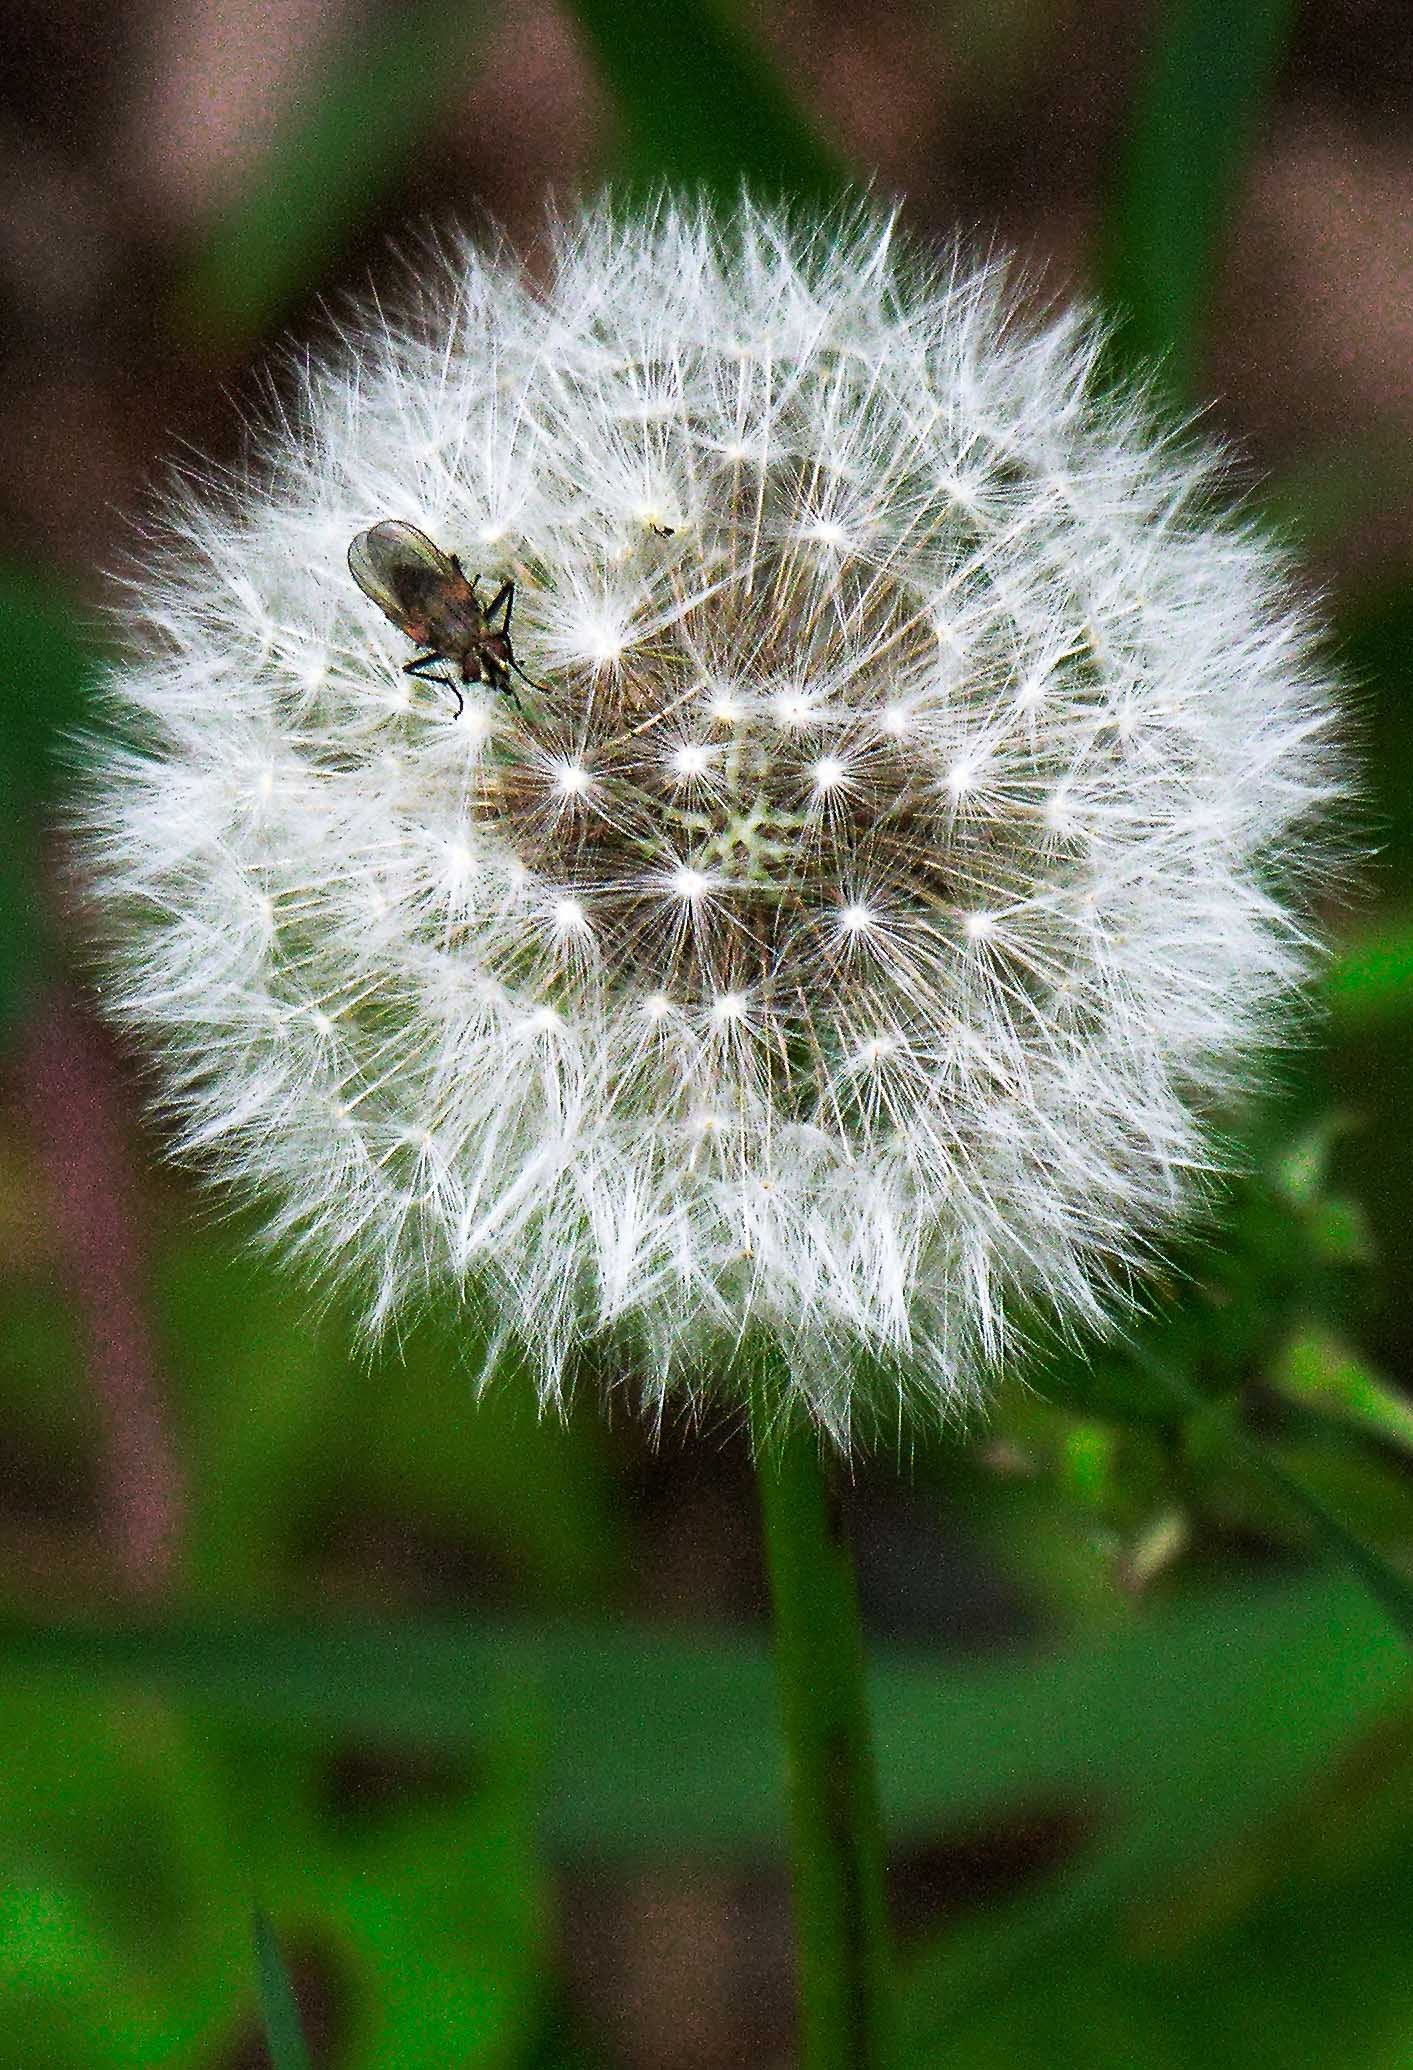 Dandelion with Visitor